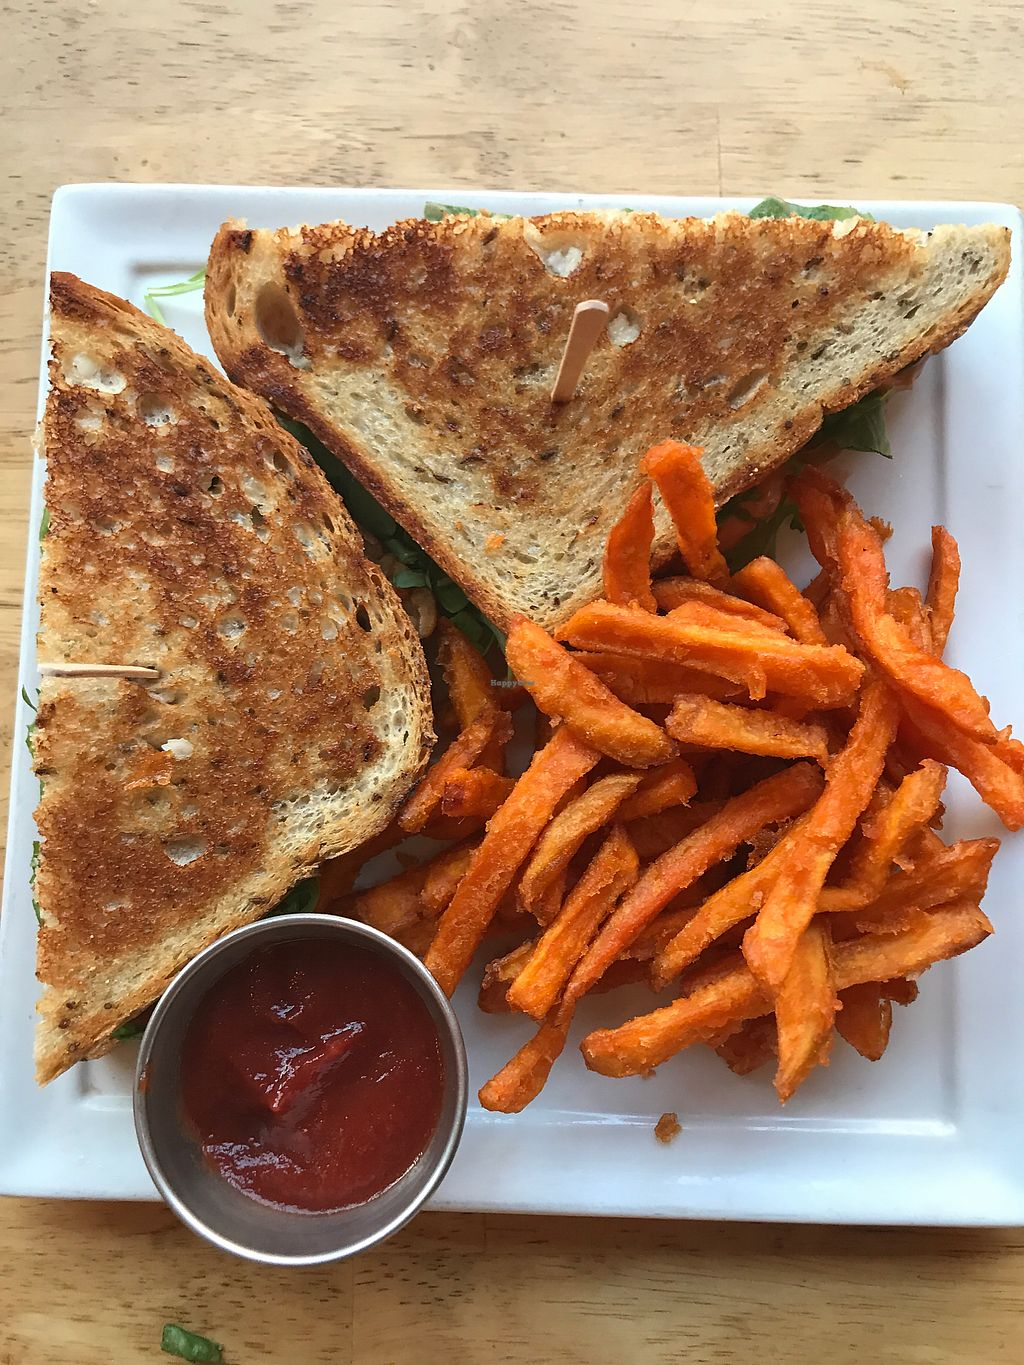 "Photo of Ahimsa Vegan Cafe  by <a href=""/members/profile/Bex2017"">Bex2017</a> <br/>Ruben Sandwich - 4 Stars <br/> October 1, 2017  - <a href='/contact/abuse/image/44909/310609'>Report</a>"